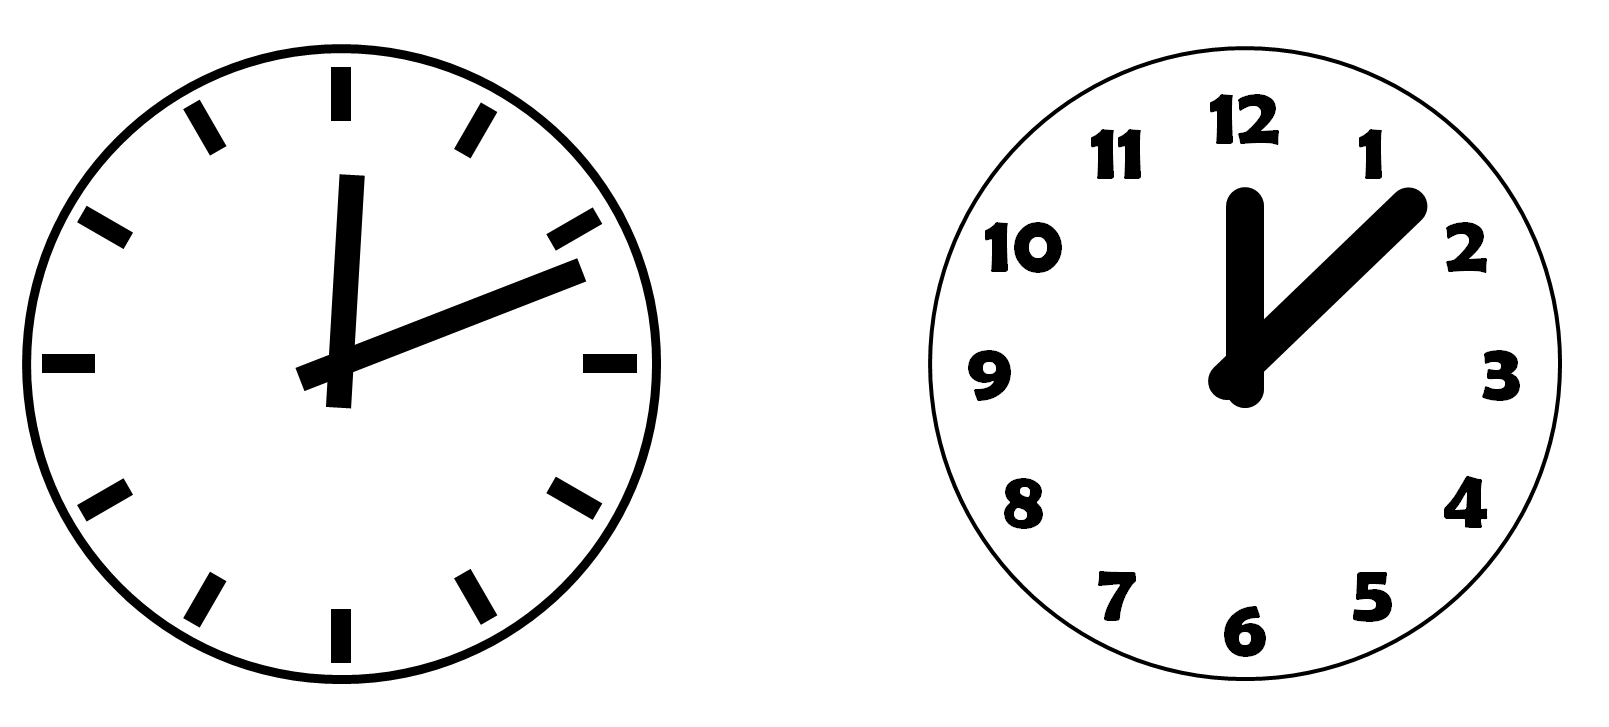 how to draw a clock how to draw a wall clock step by step wall clock clock draw a how to